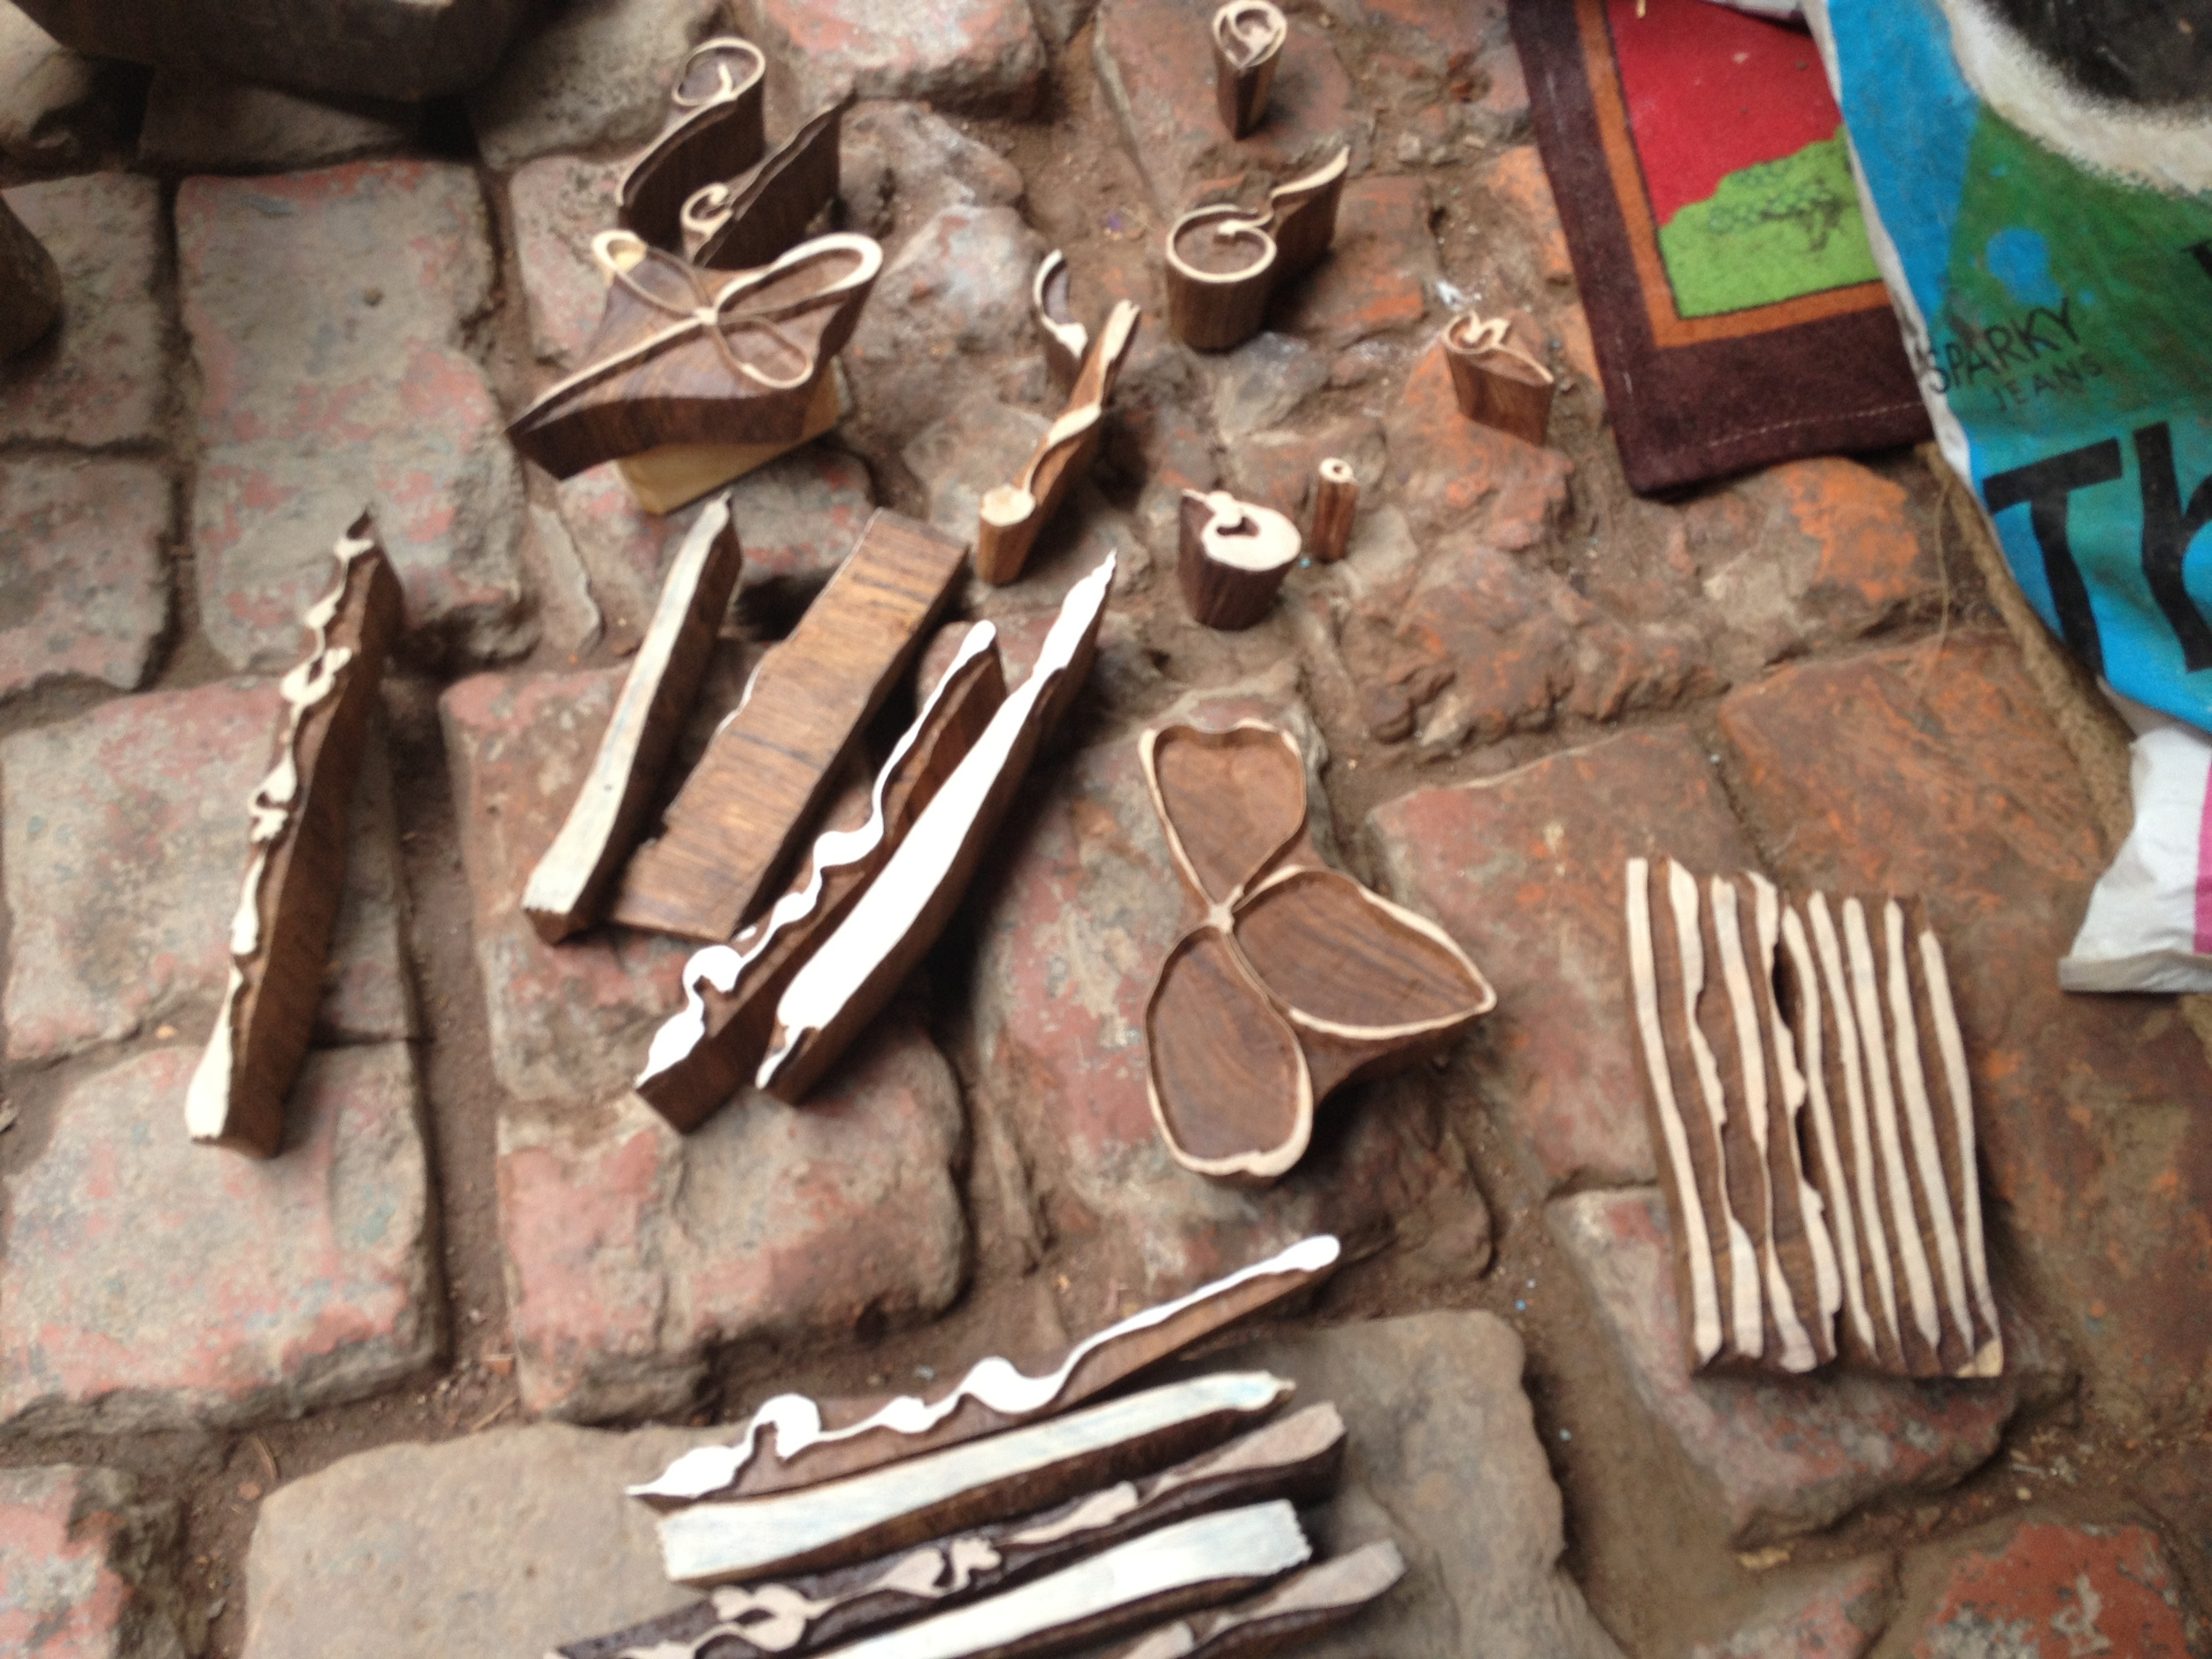 my blocks on floor of shop, Khojwa, Varanasi, 2013